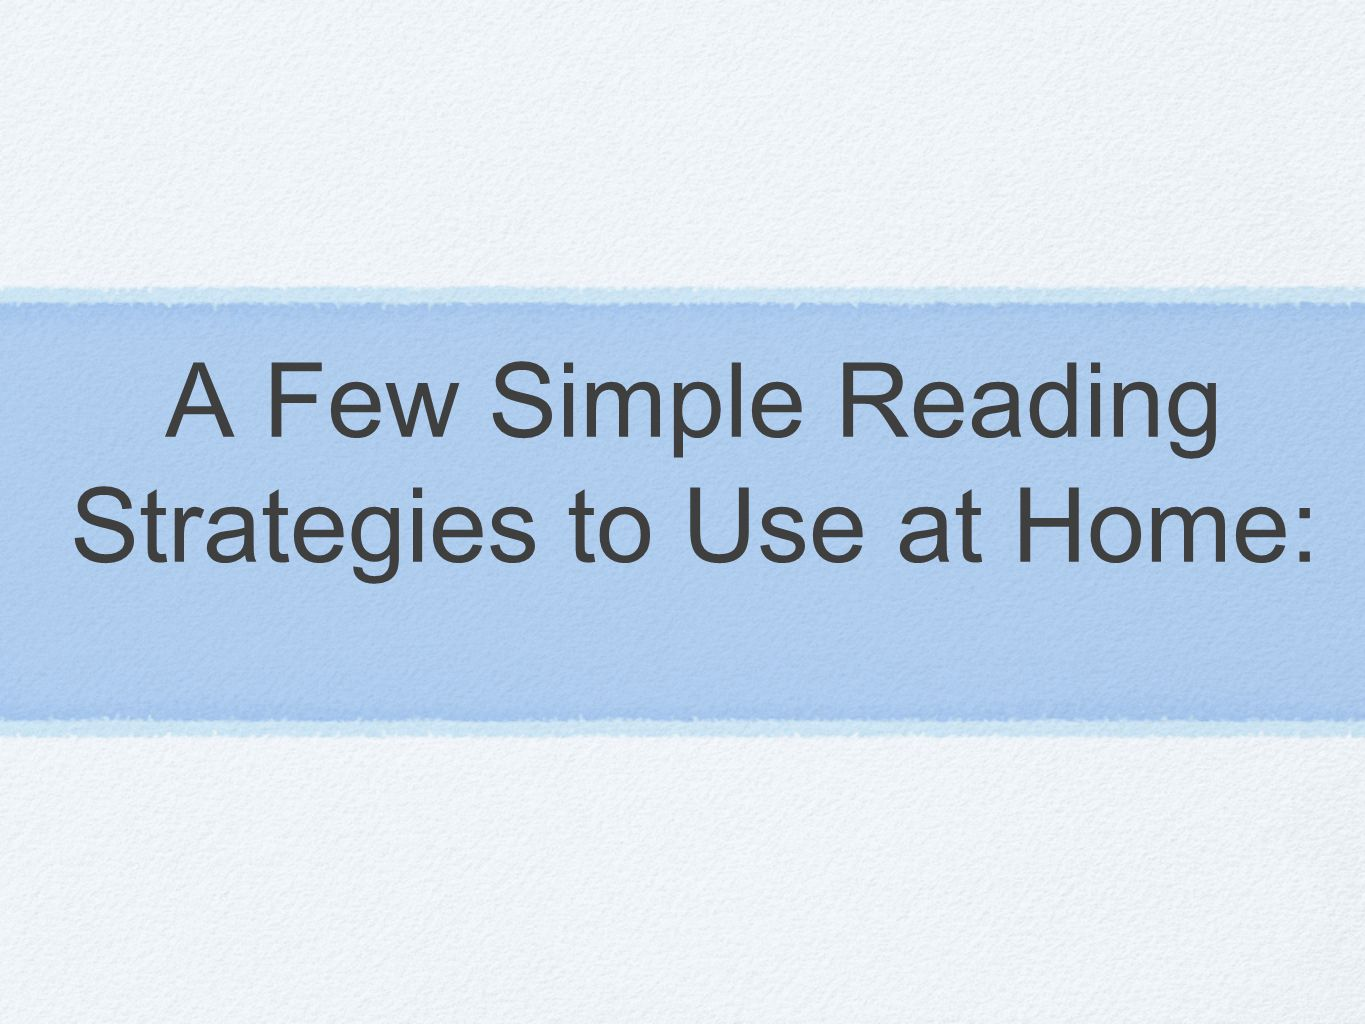 A Few Simple Reading Strategies to Use at Home: